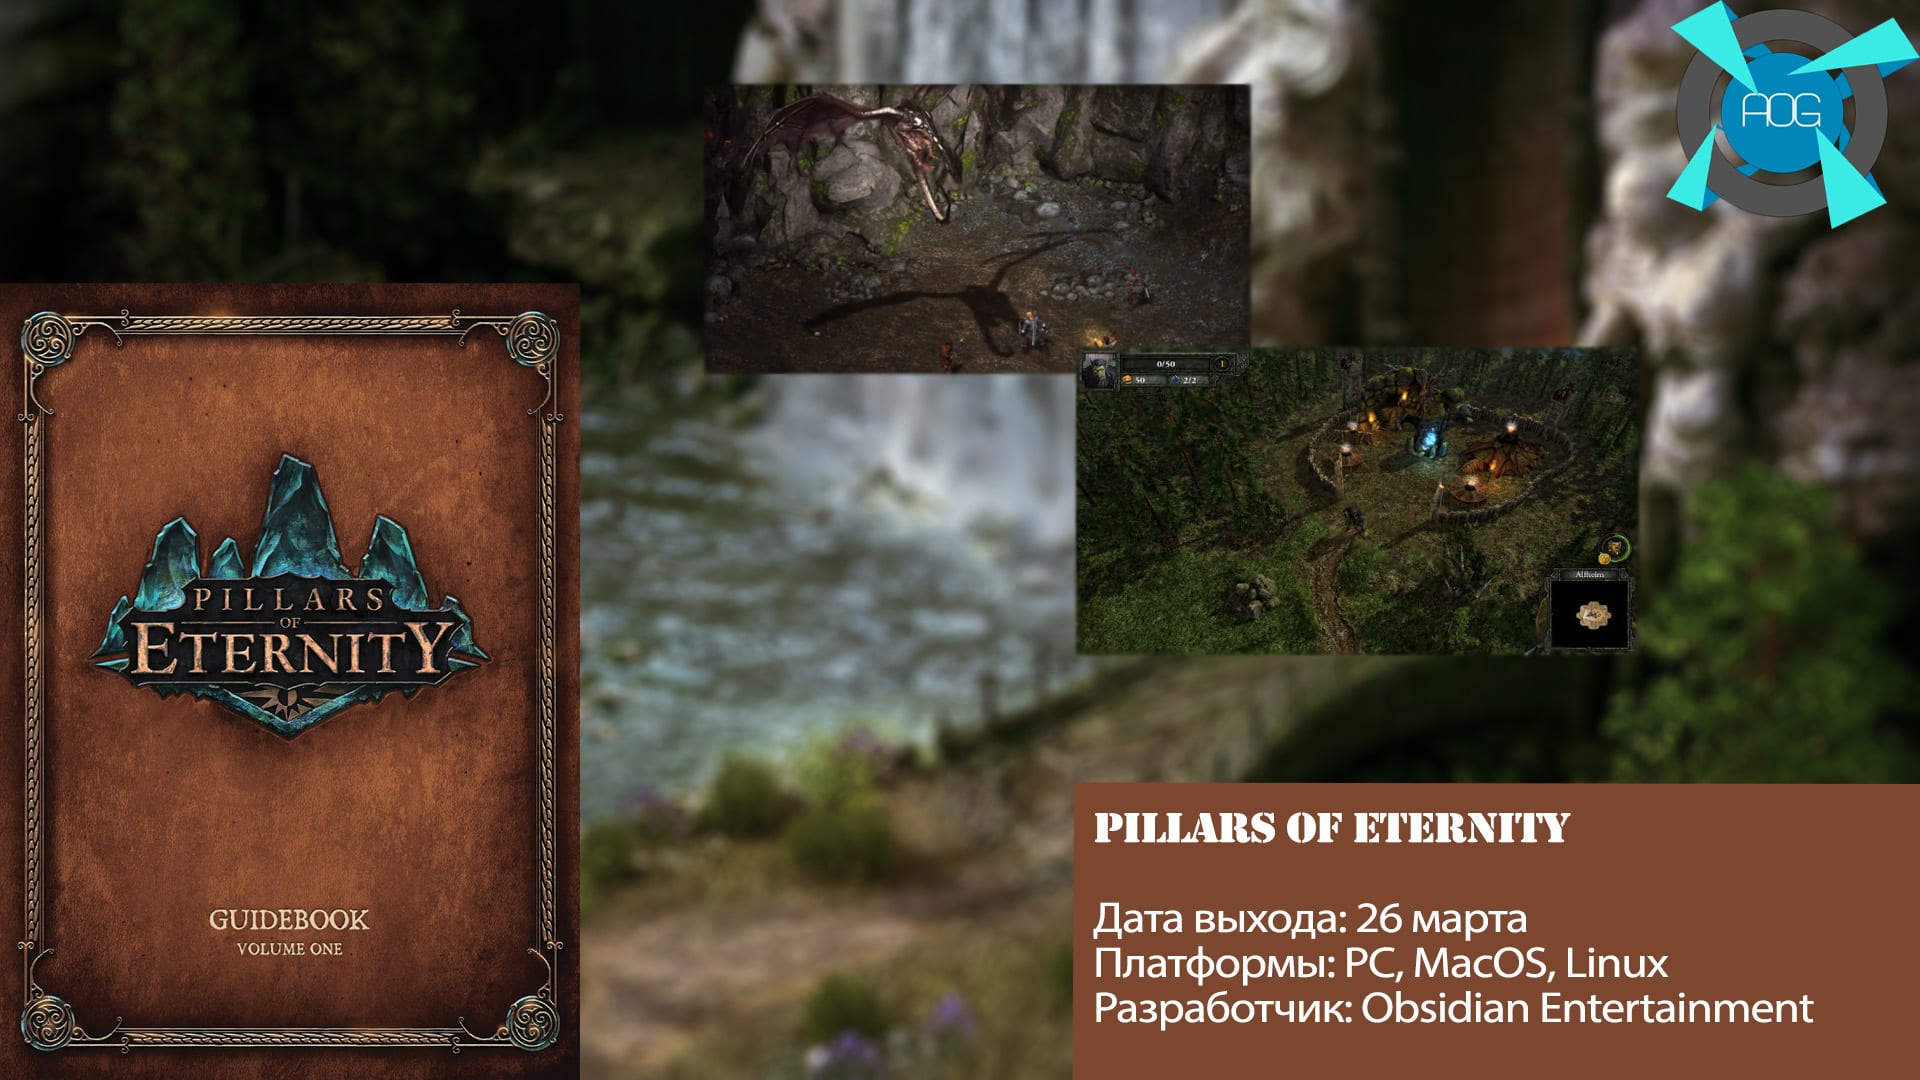 pillars-of-eternity-3-graphik-relizov-2015-march